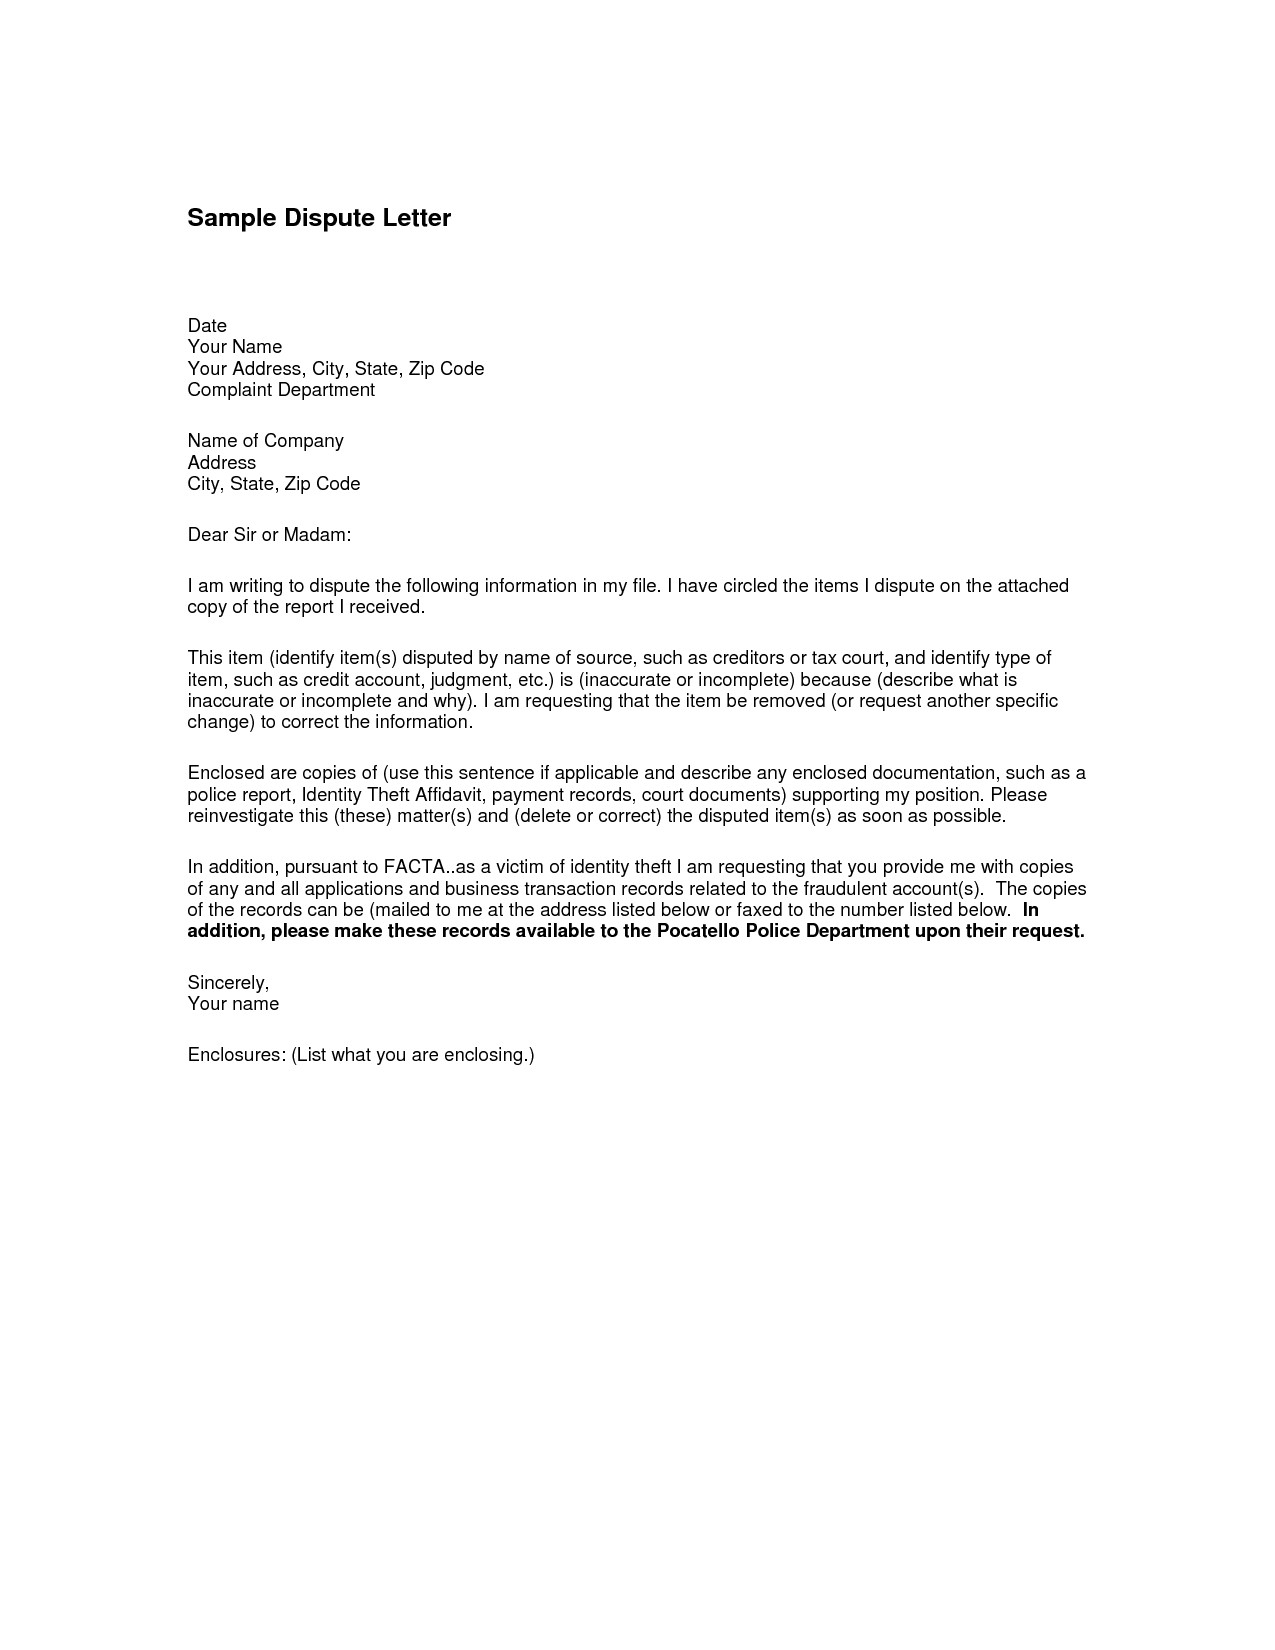 Credit Dispute Letter Template - Invoice Dispute Letter Awesome How to Write An Excellent Resume Rfp